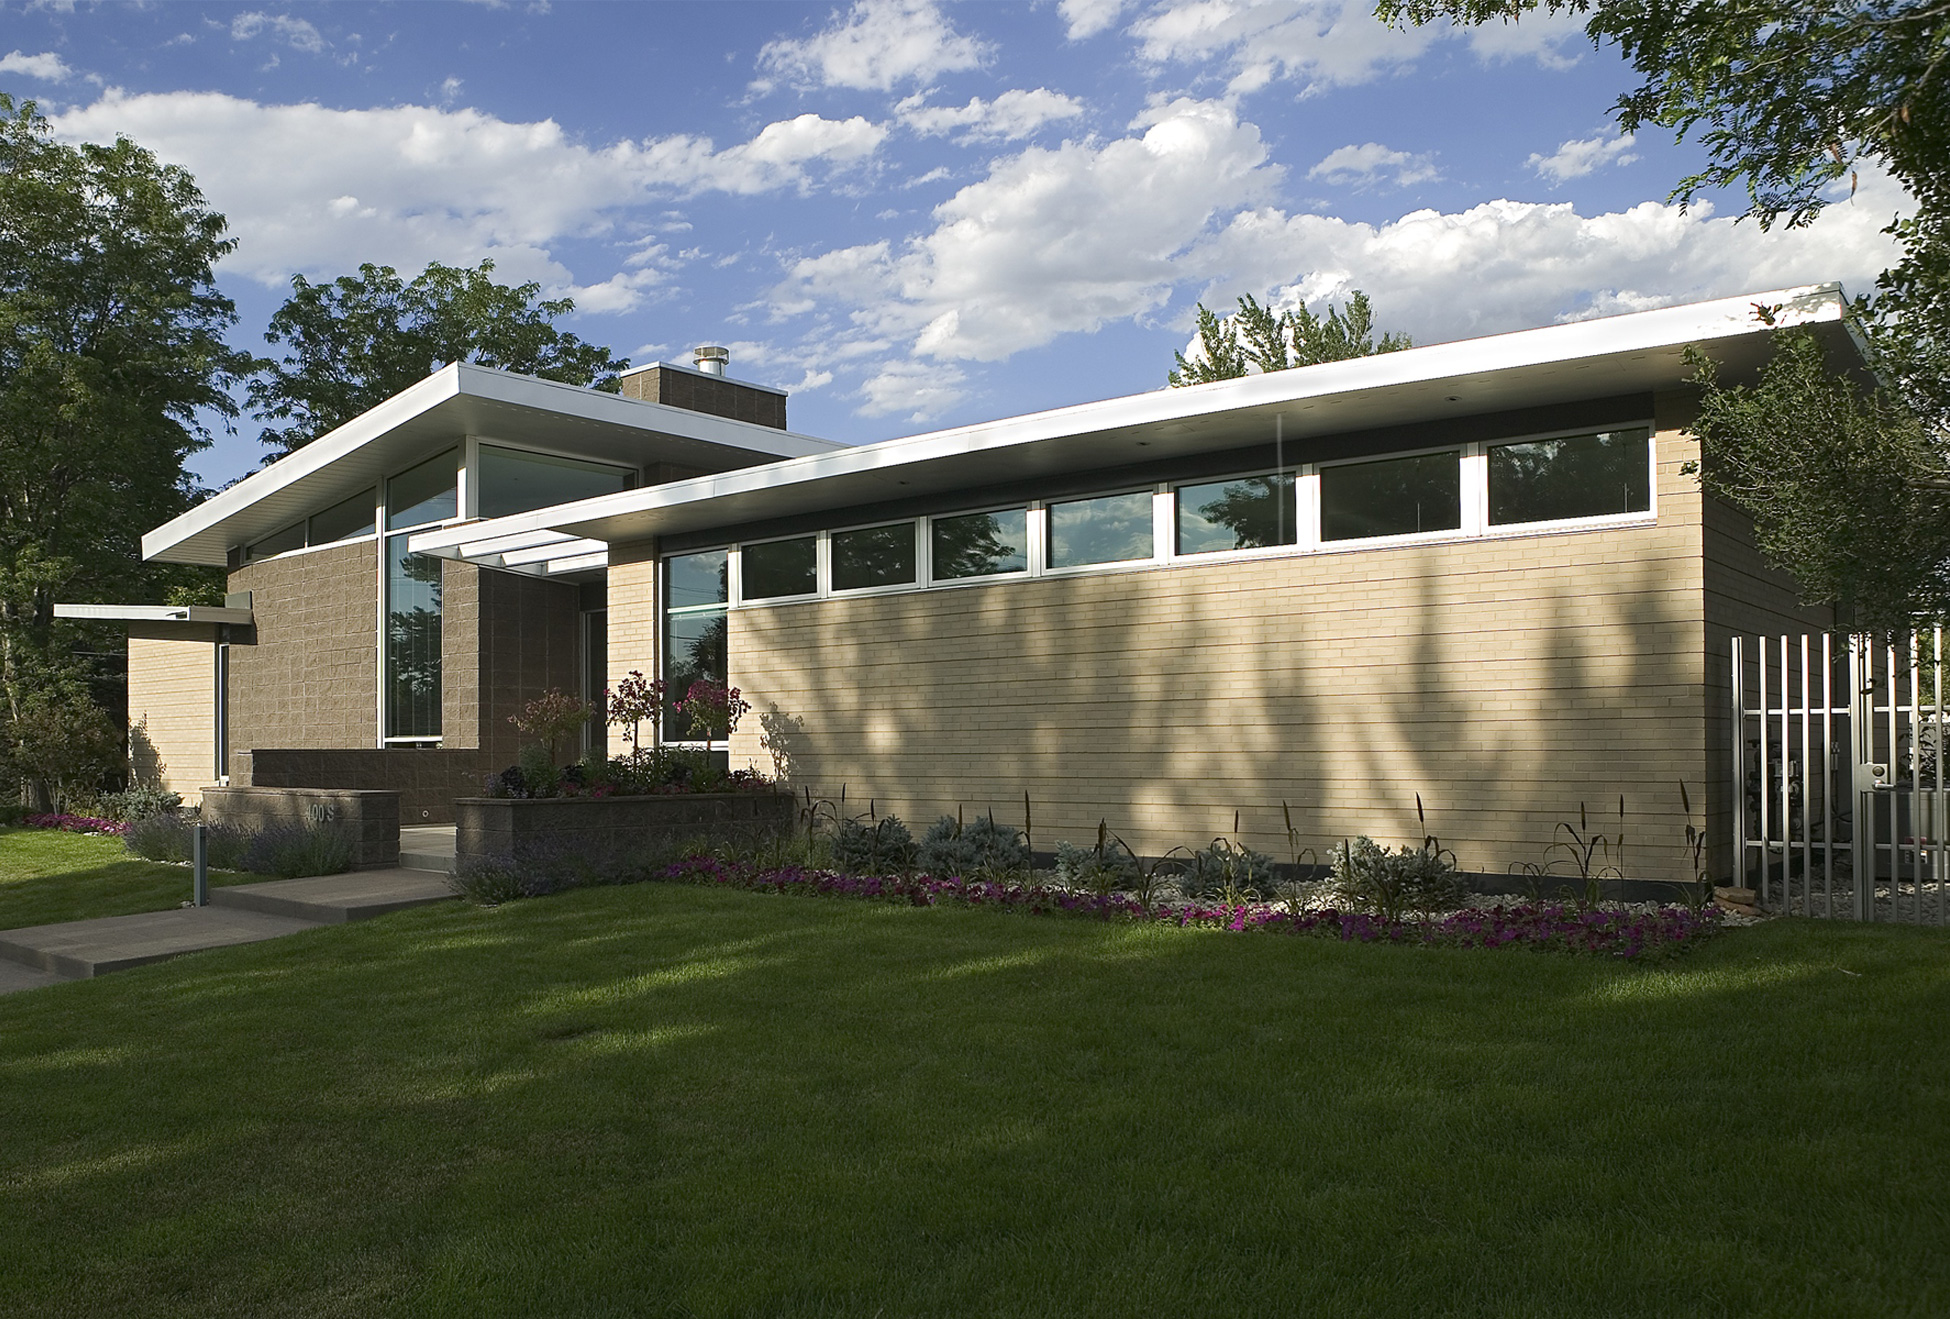 mid century modern home - hmh architecture + interiors - boulder, co